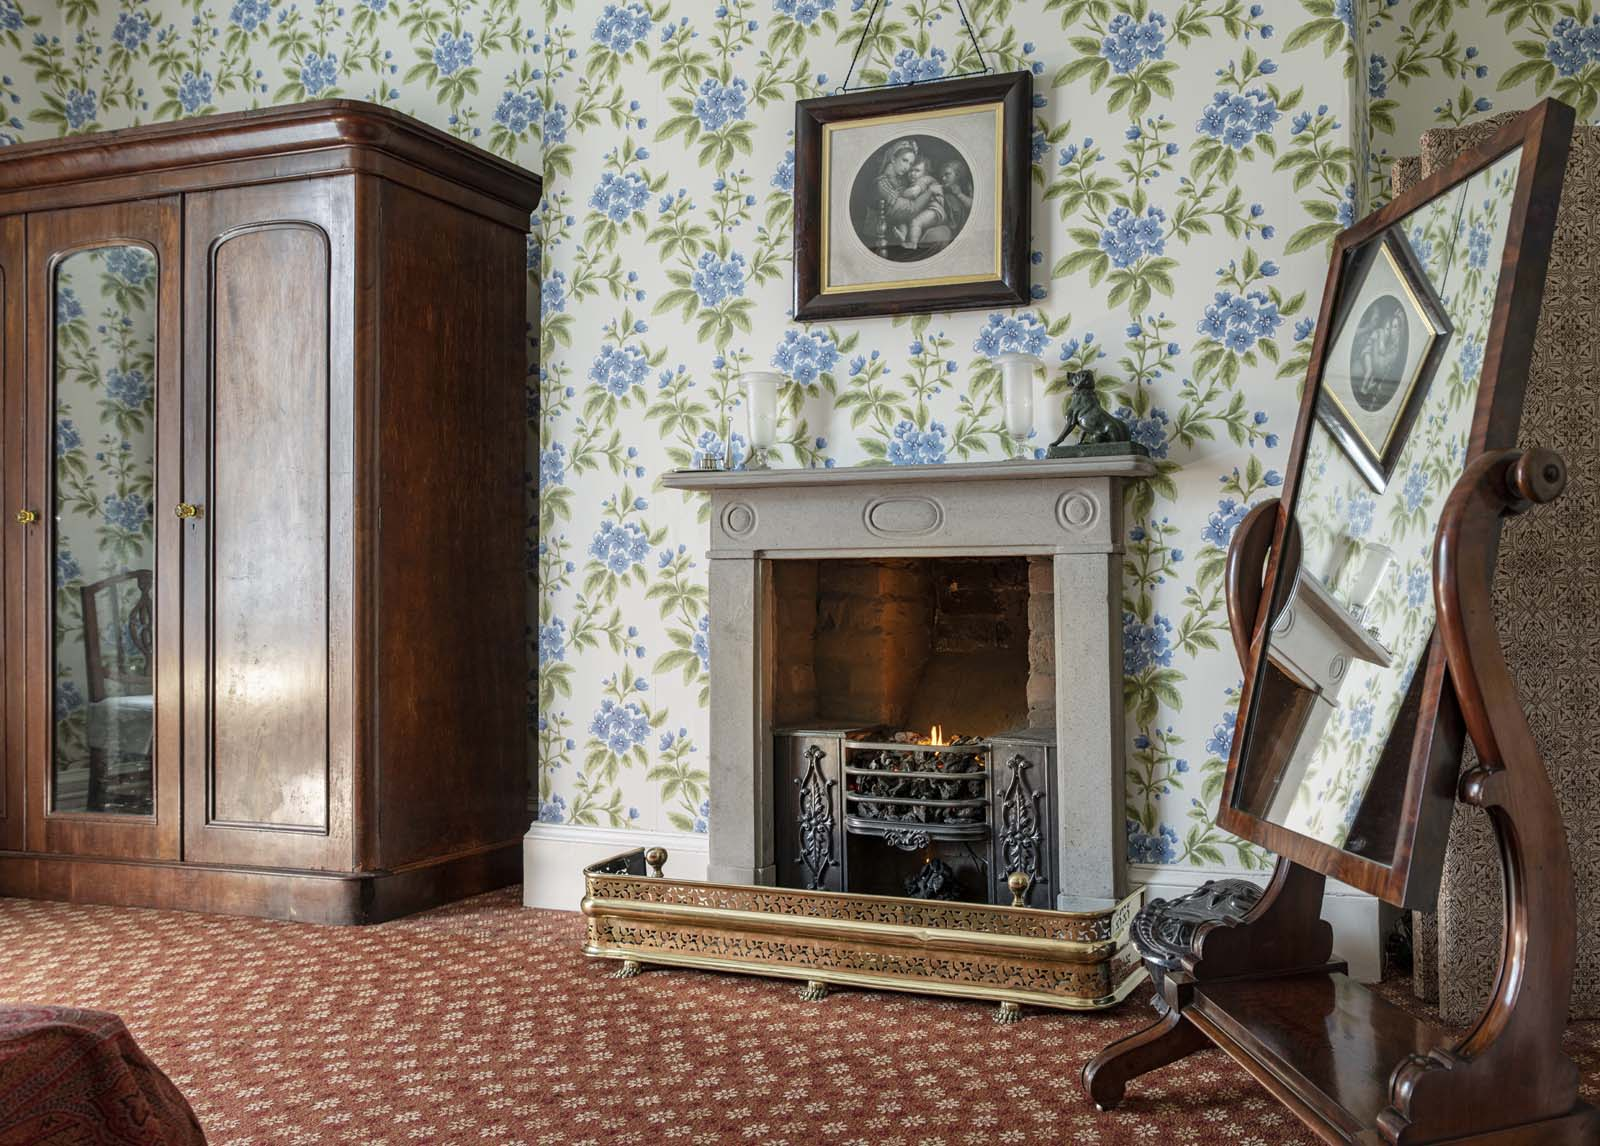 photo of a Victorian bedroom fireplace with floral wallpaper and teak wardrobe